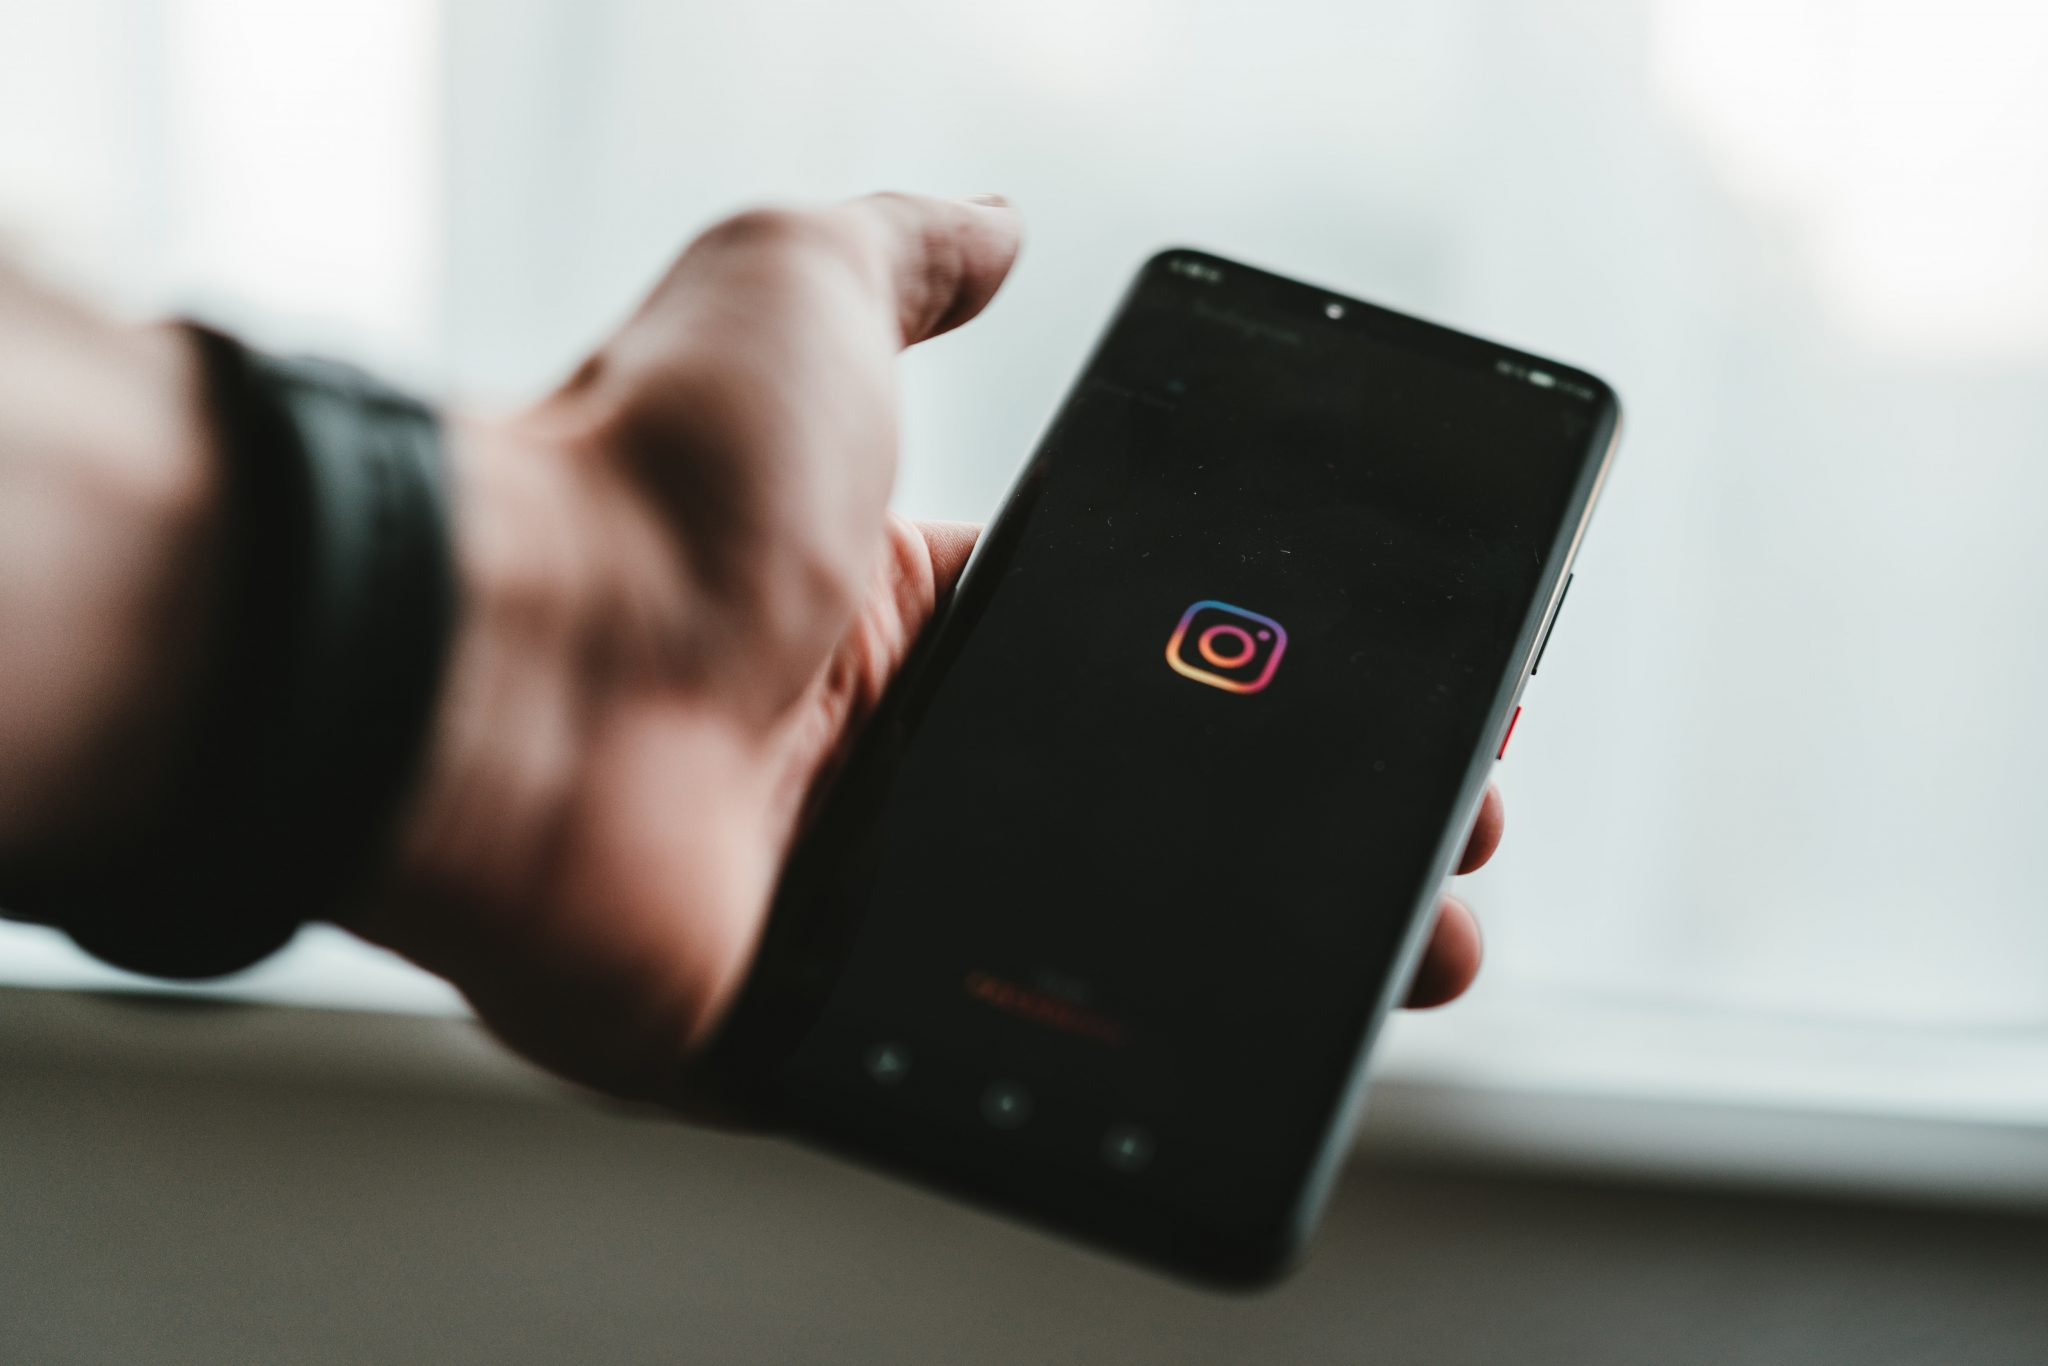 What's The Best Text-To-Speech Software With License Rights For Reels On Instagram?